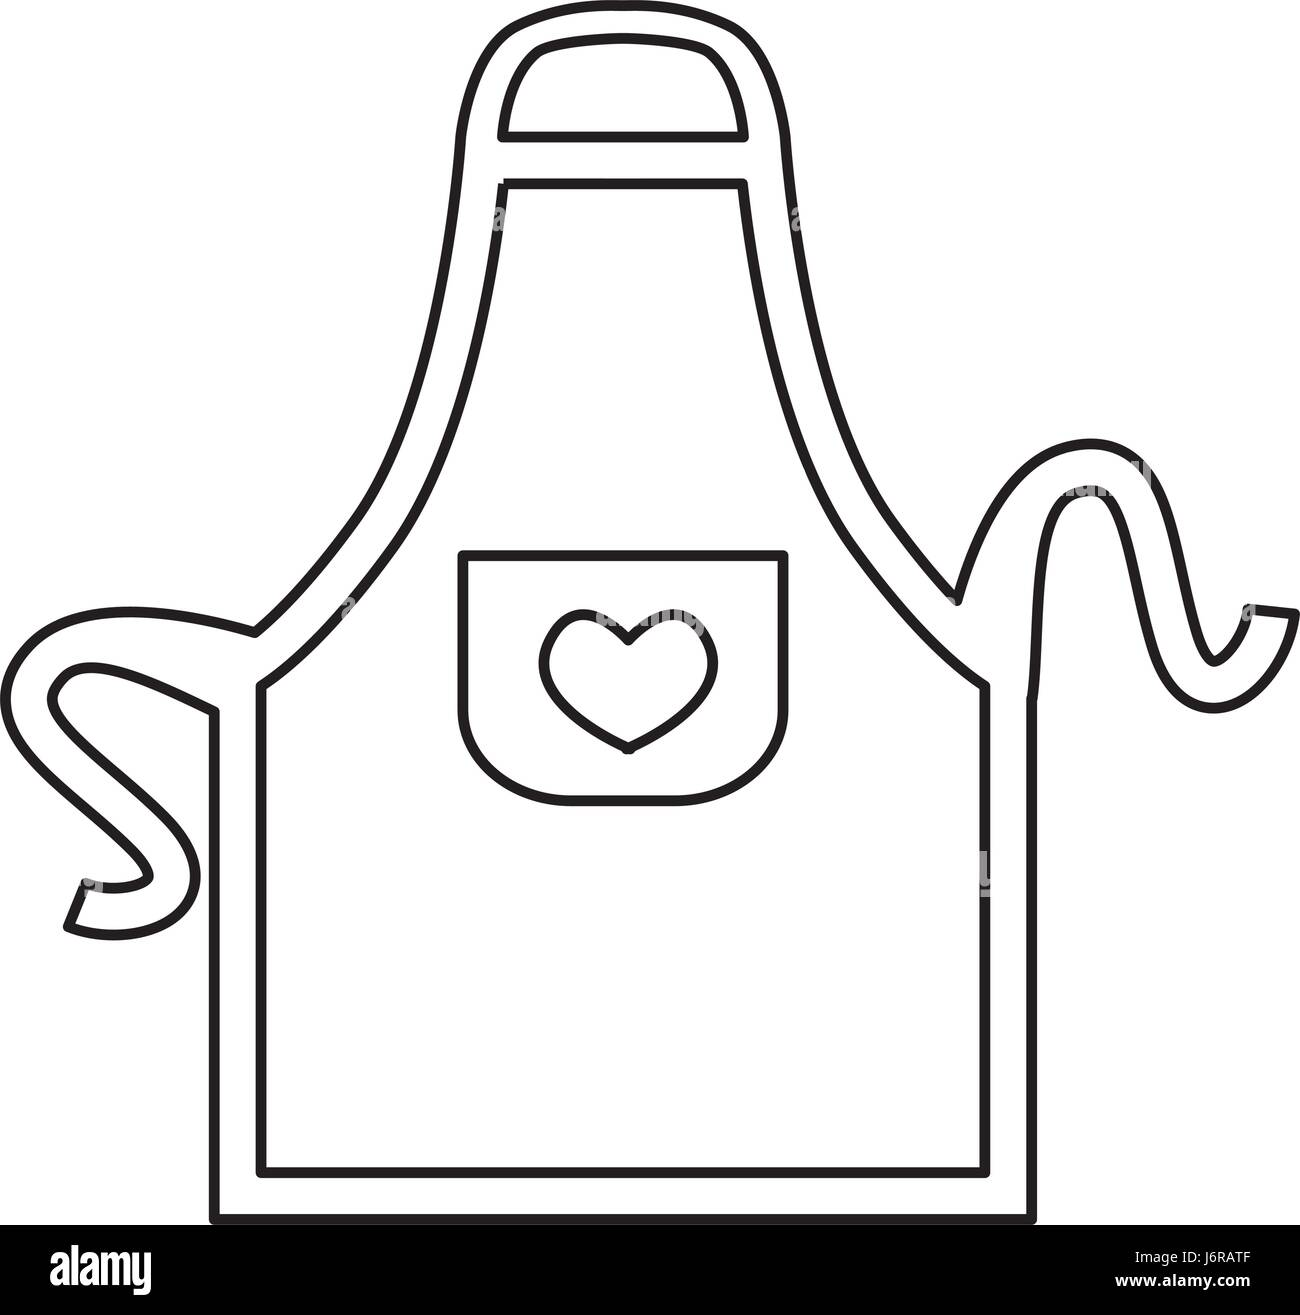 White Apron Clipart | www.pixshark.com - Images Galleries ...